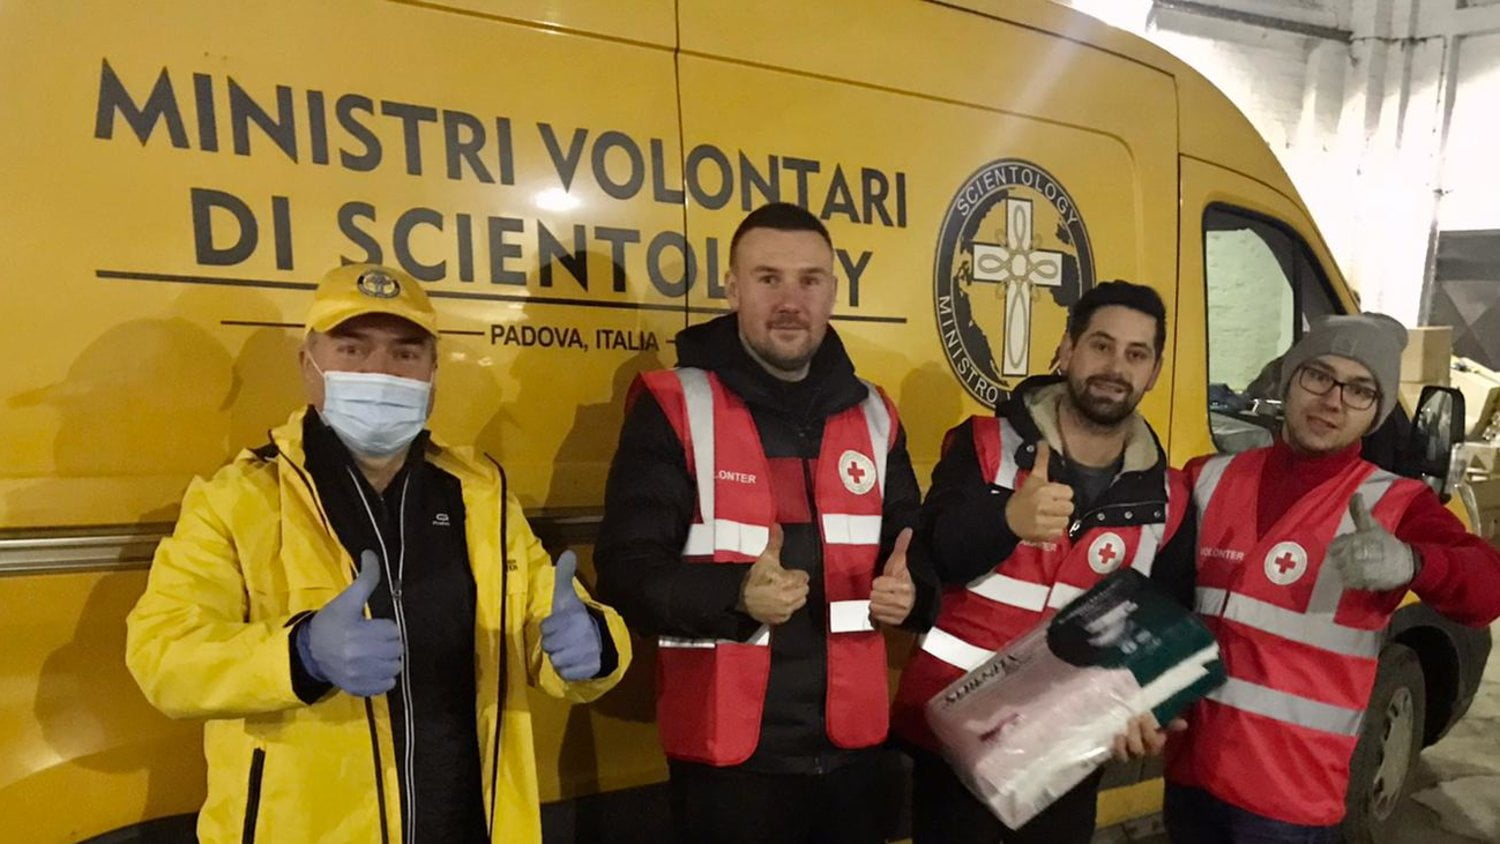 Scientology Volunteer Ministers to Return to Croatia With Additional Humanitarian Aid